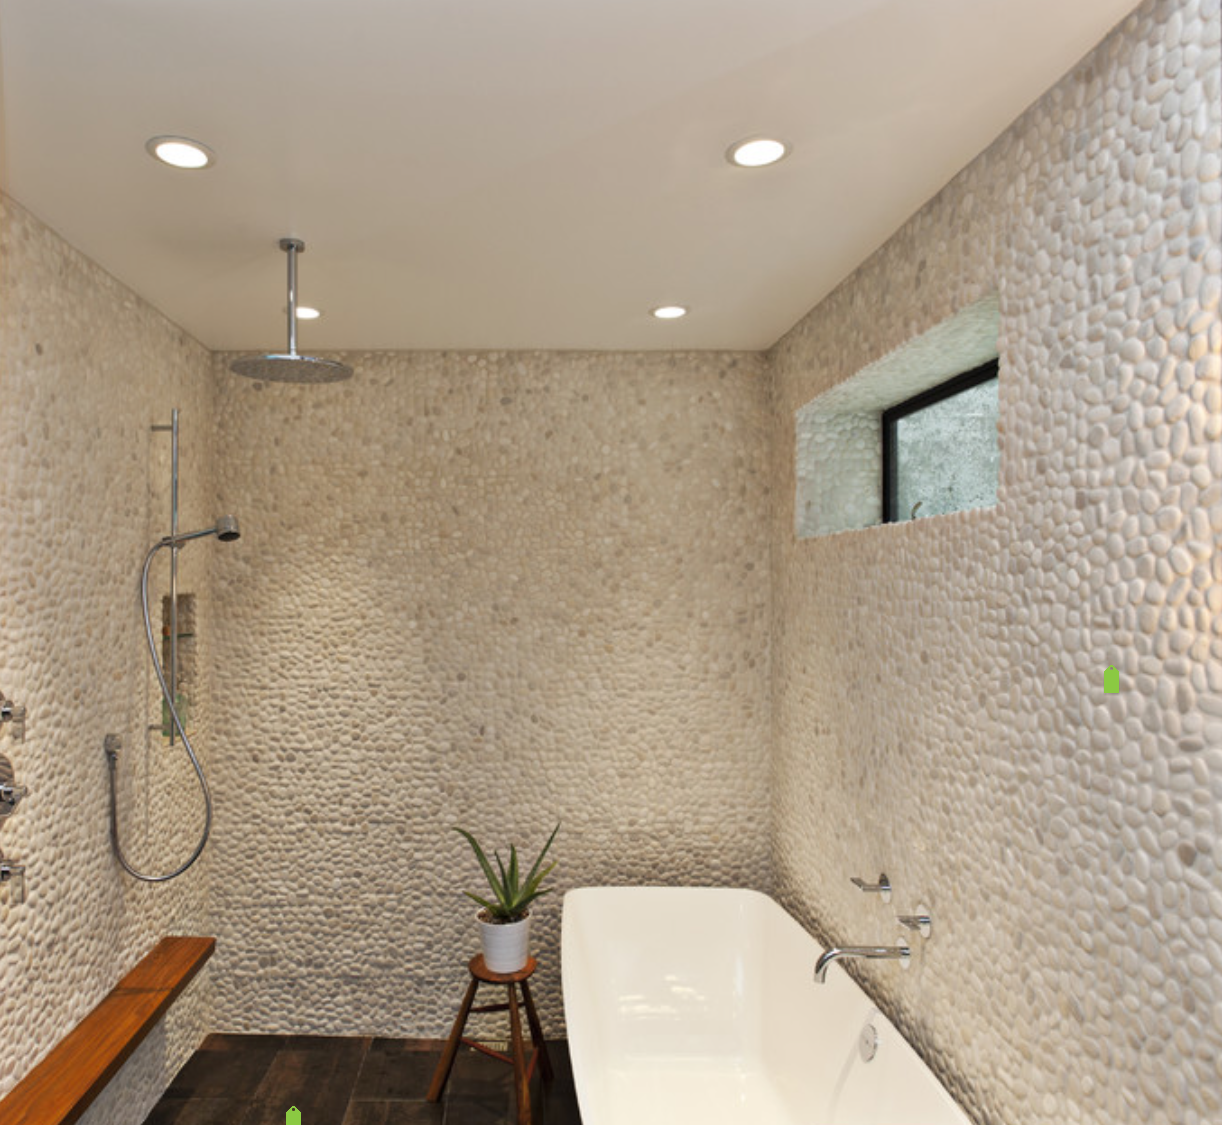 My dream shower design...minus the tub in the shower...